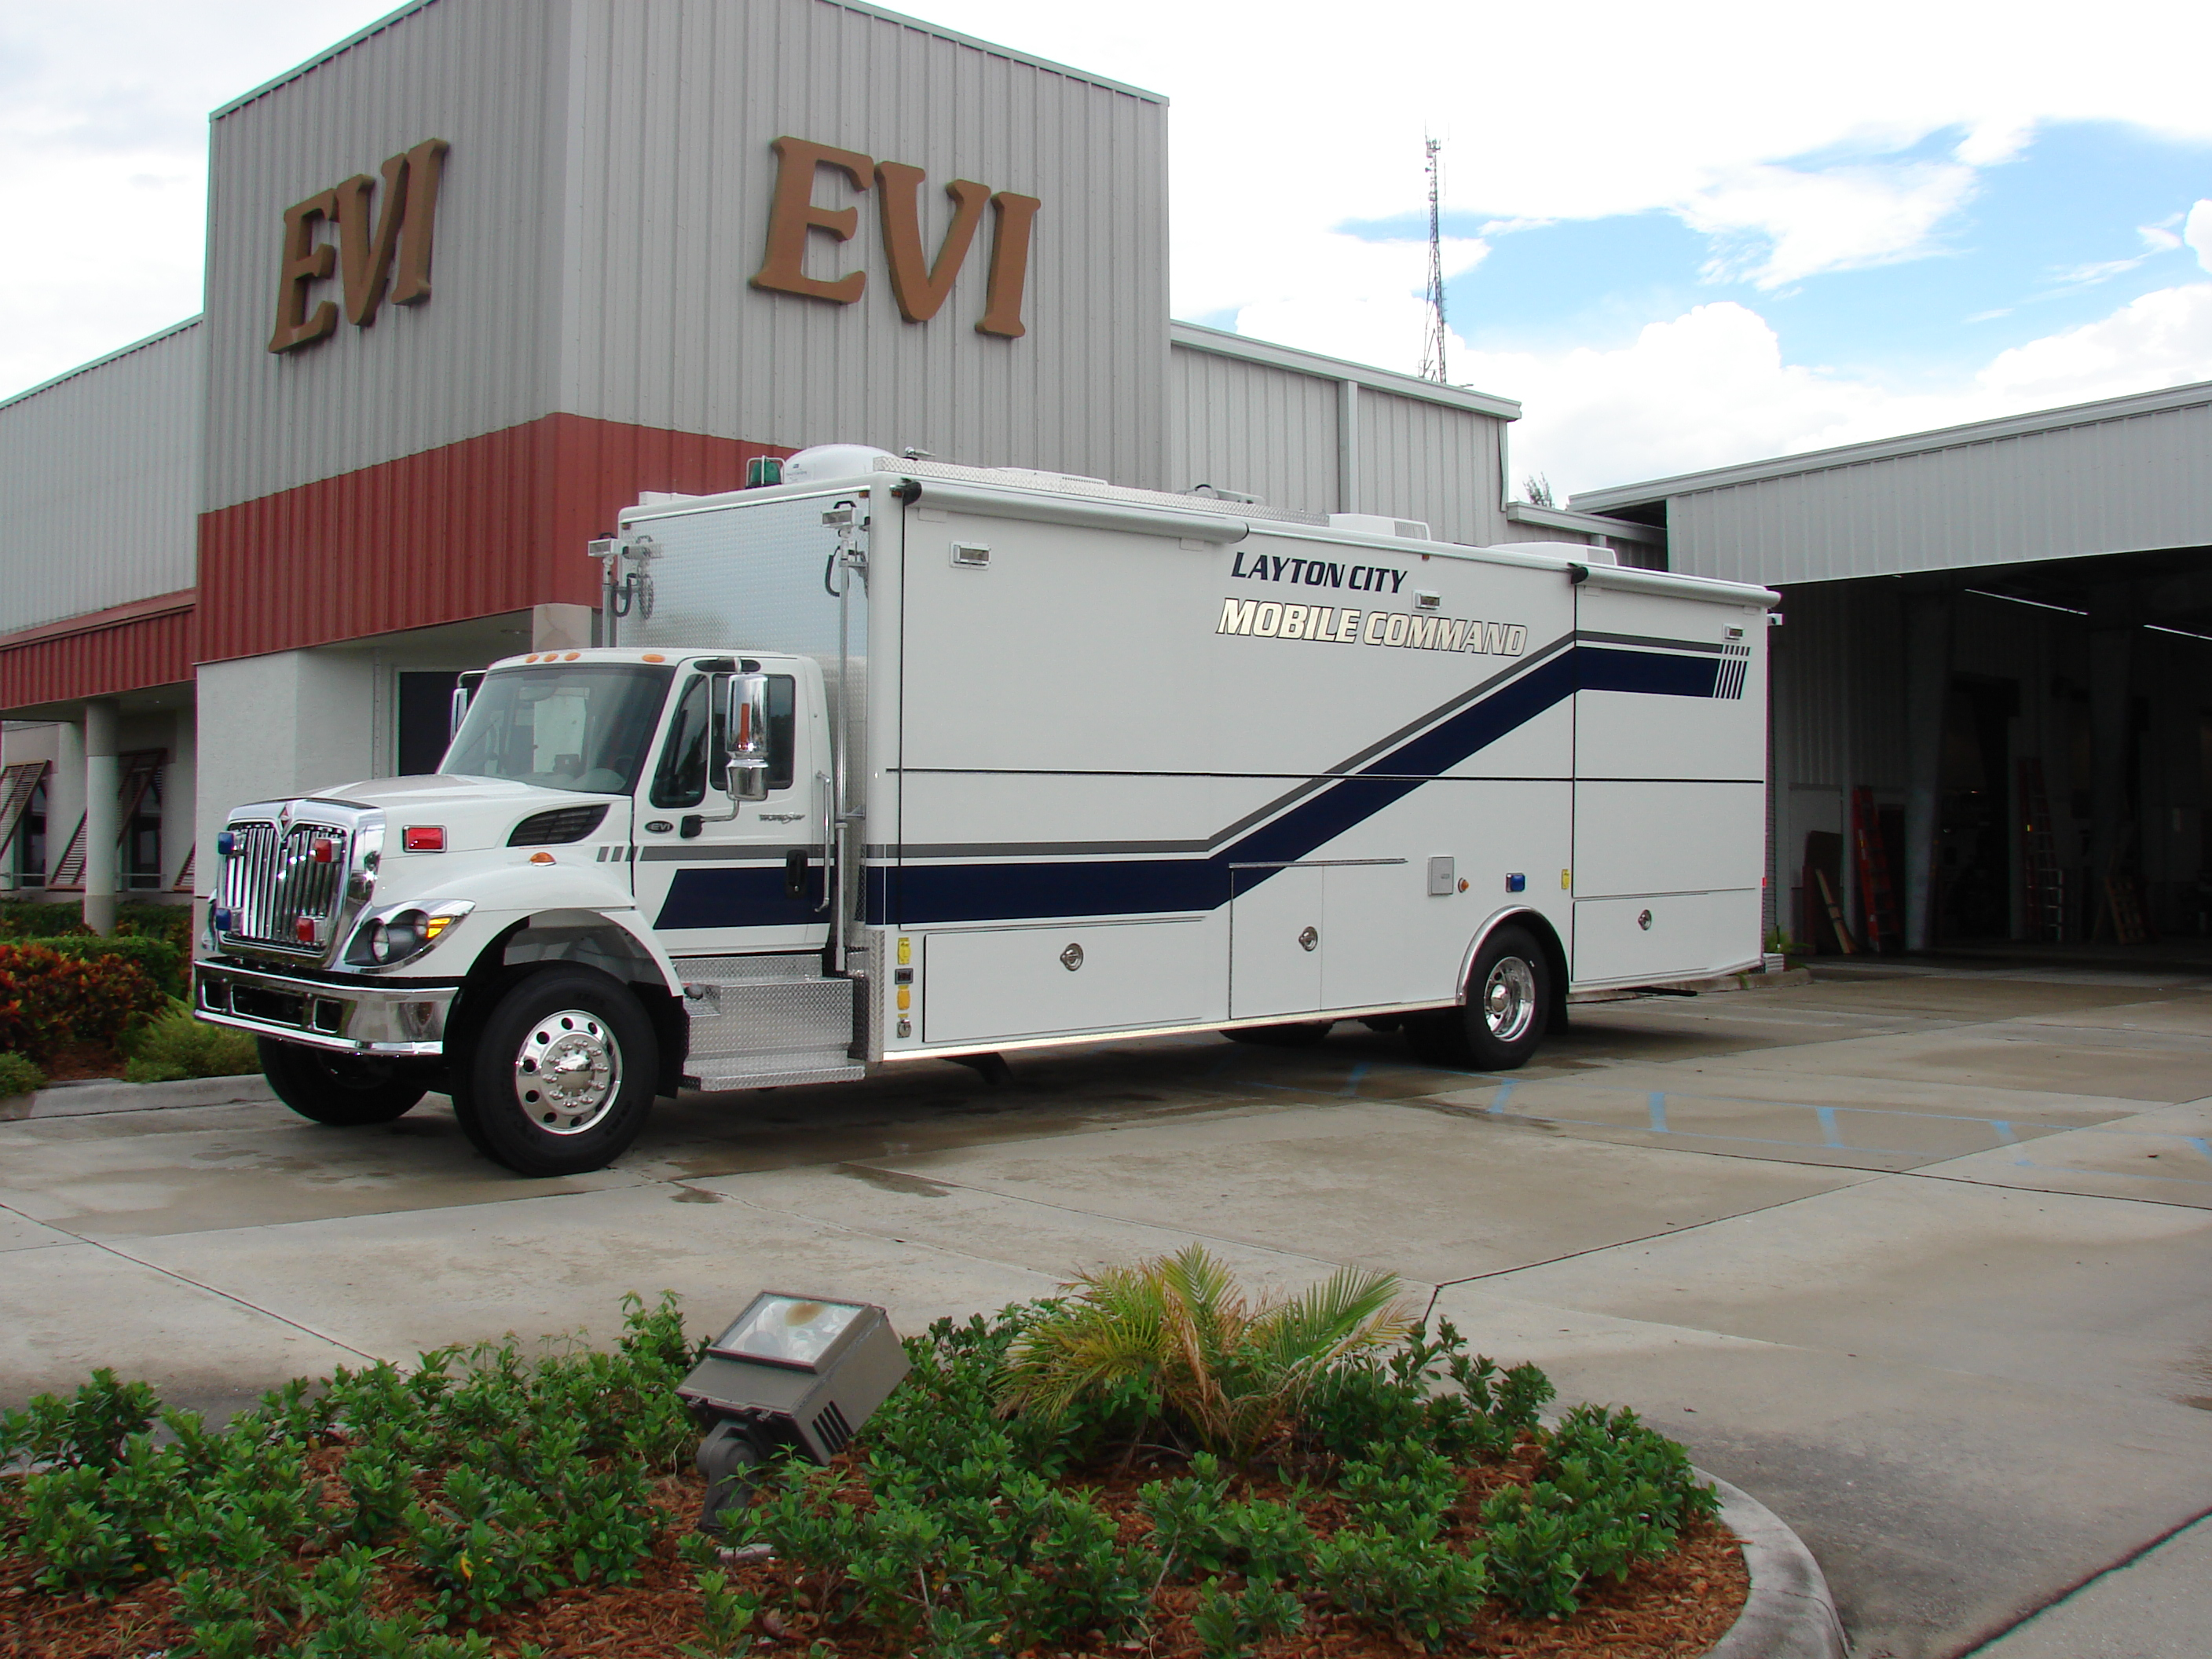 EVI Mobile Command / Communications